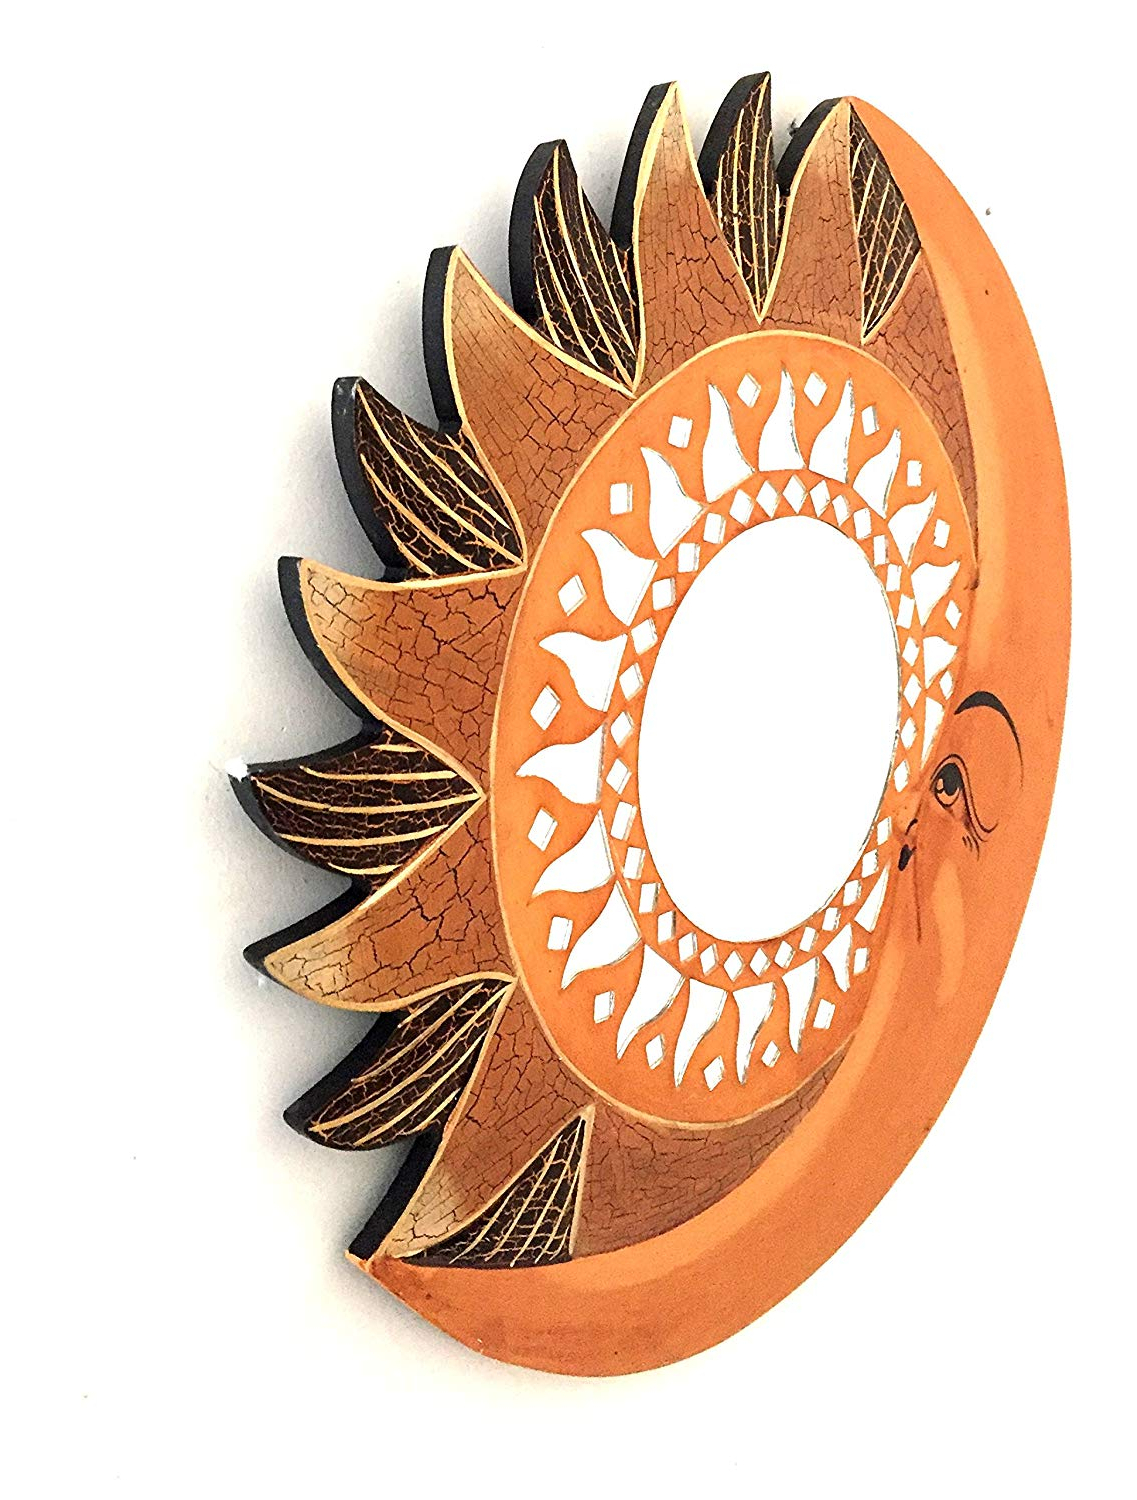 Sun Shaped Wall Mirror Brown Mirrror, Celestial Sun Moon Wall Decor Mosaic   Handmade – Oma Brand Pertaining To Best And Newest Sun Shaped Wall Mirrors (View 17 of 20)